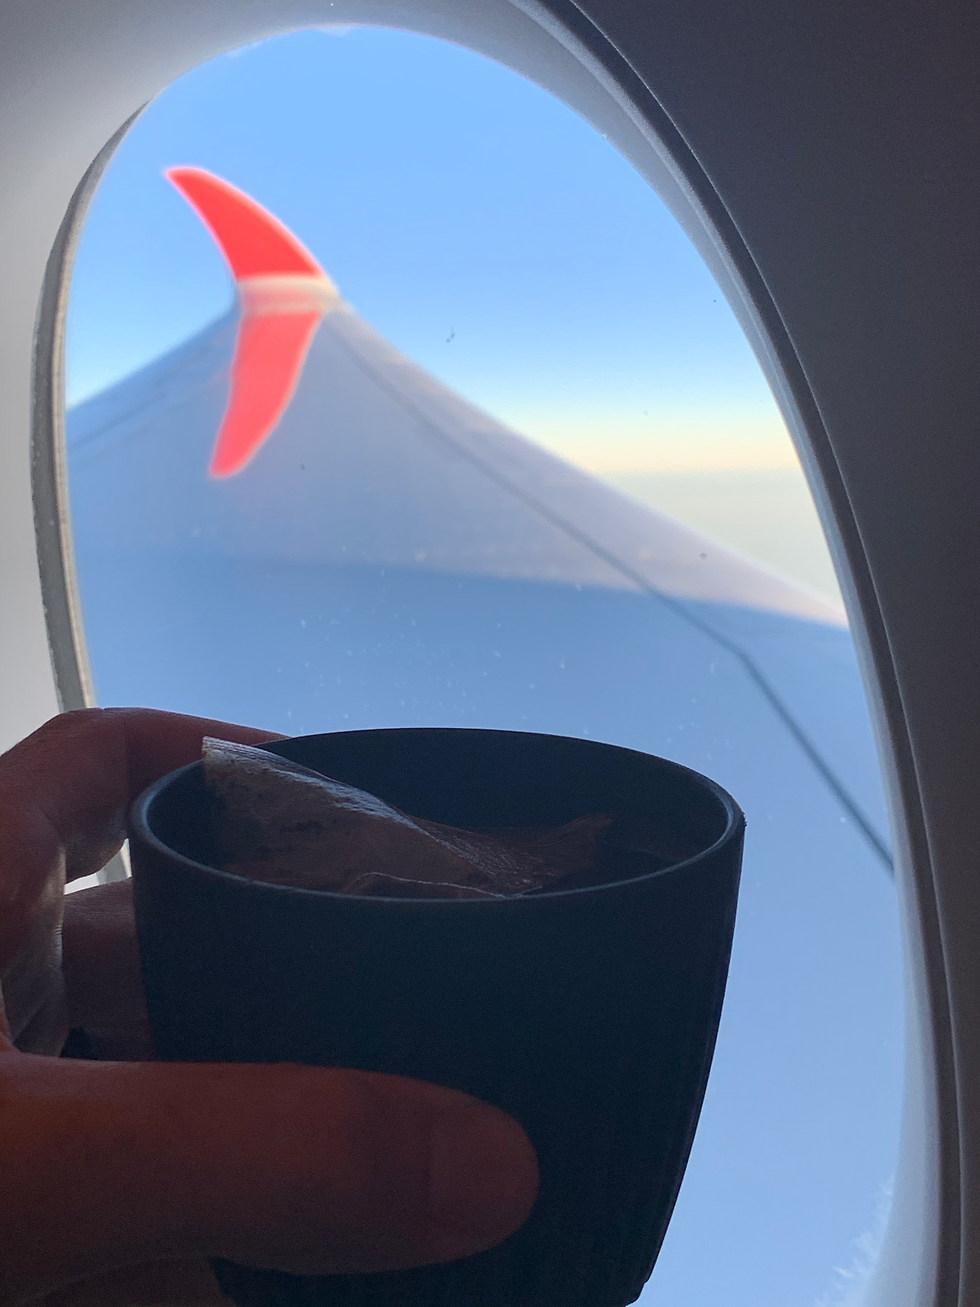 How many times have you wished you could get great coffee in an airplane? Wishfull thinking works, dipnbrew is the perfect catering solution for airlines companies in search for a better coffee option.